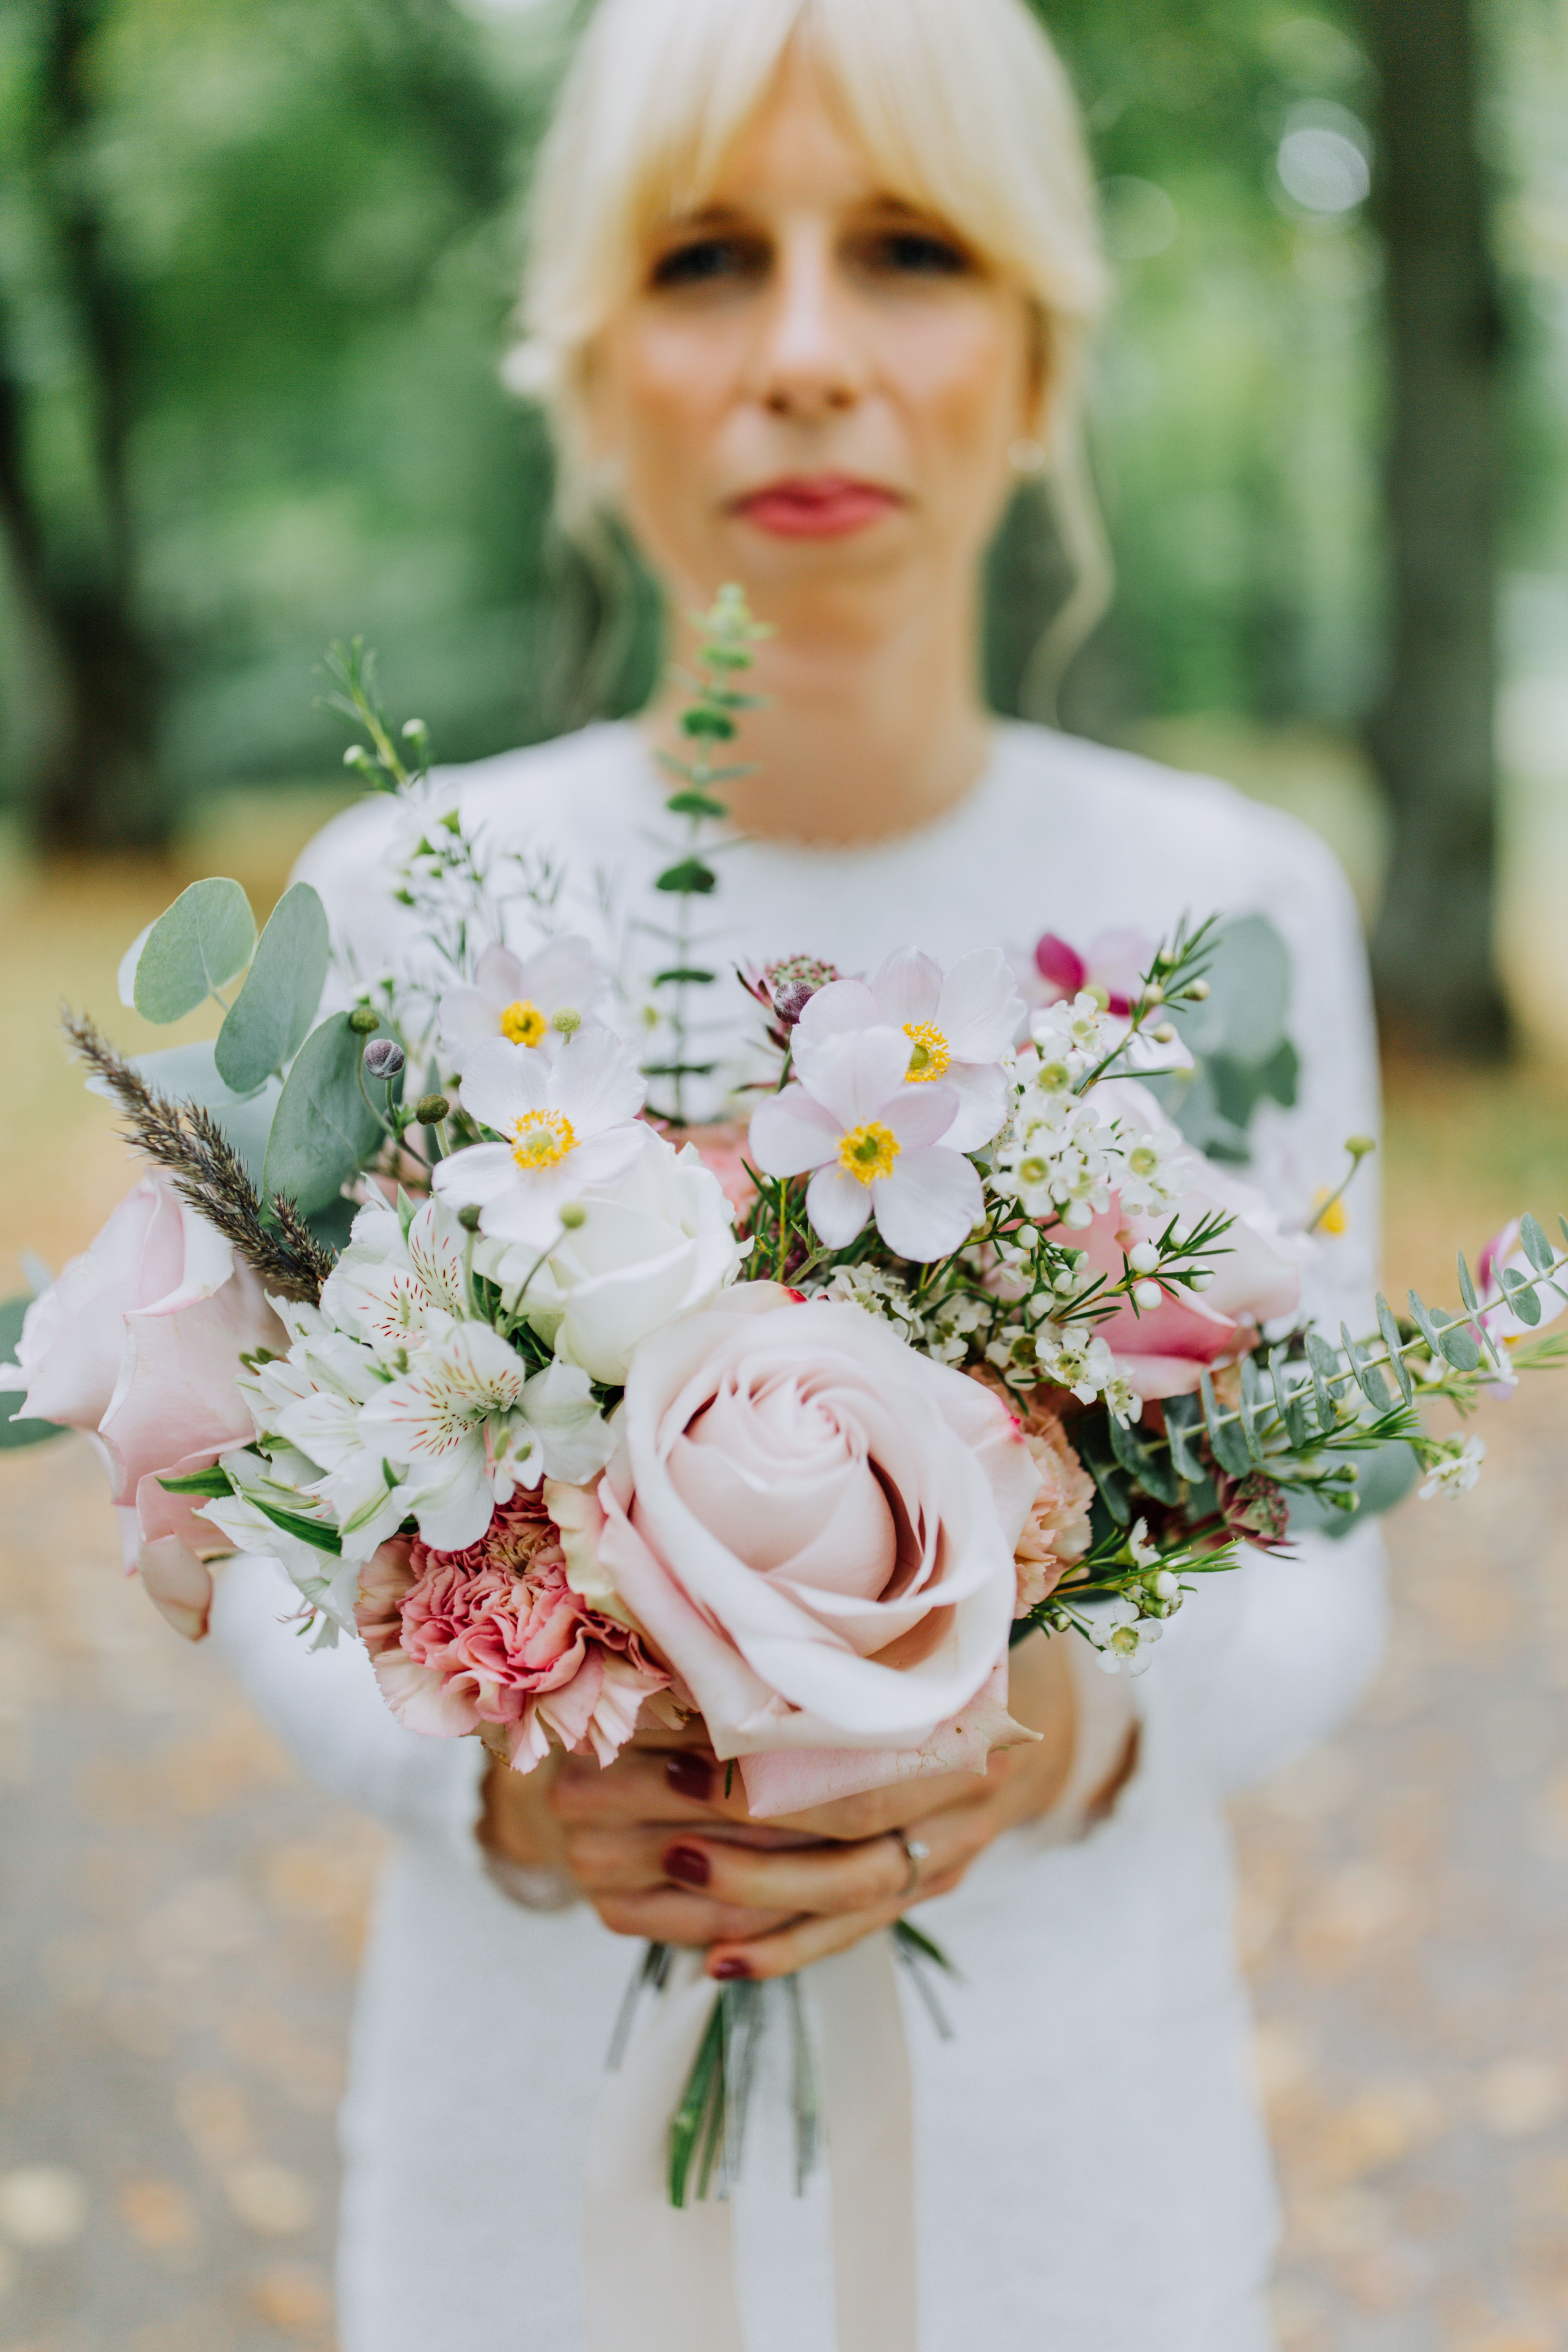 Bride With Romantic Summer Wedding Bouquet Blush Pink Roses